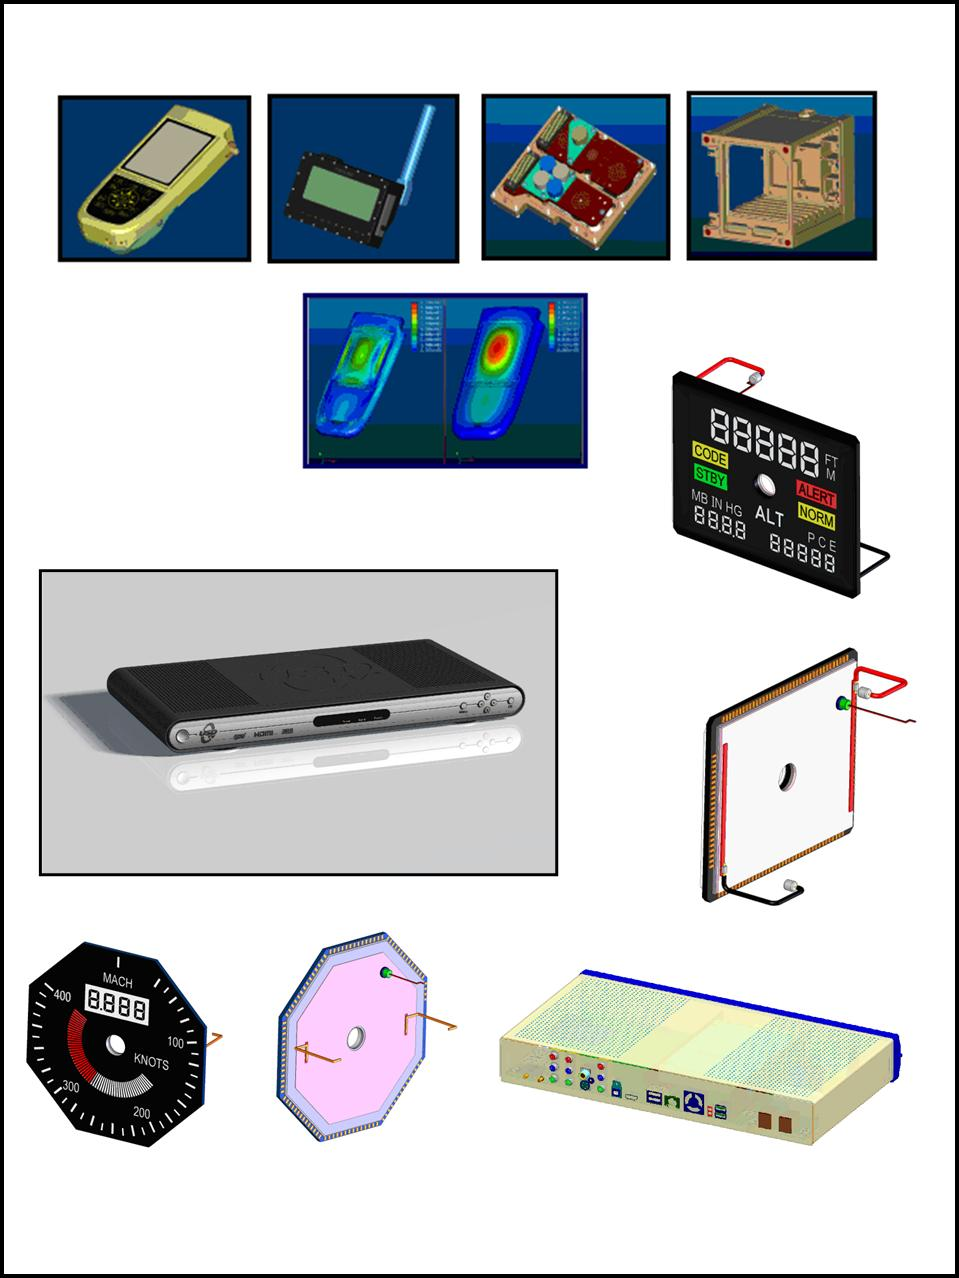 webassets/CEAI-Design-Collage--2015-12-31--Aerosonic.jpg